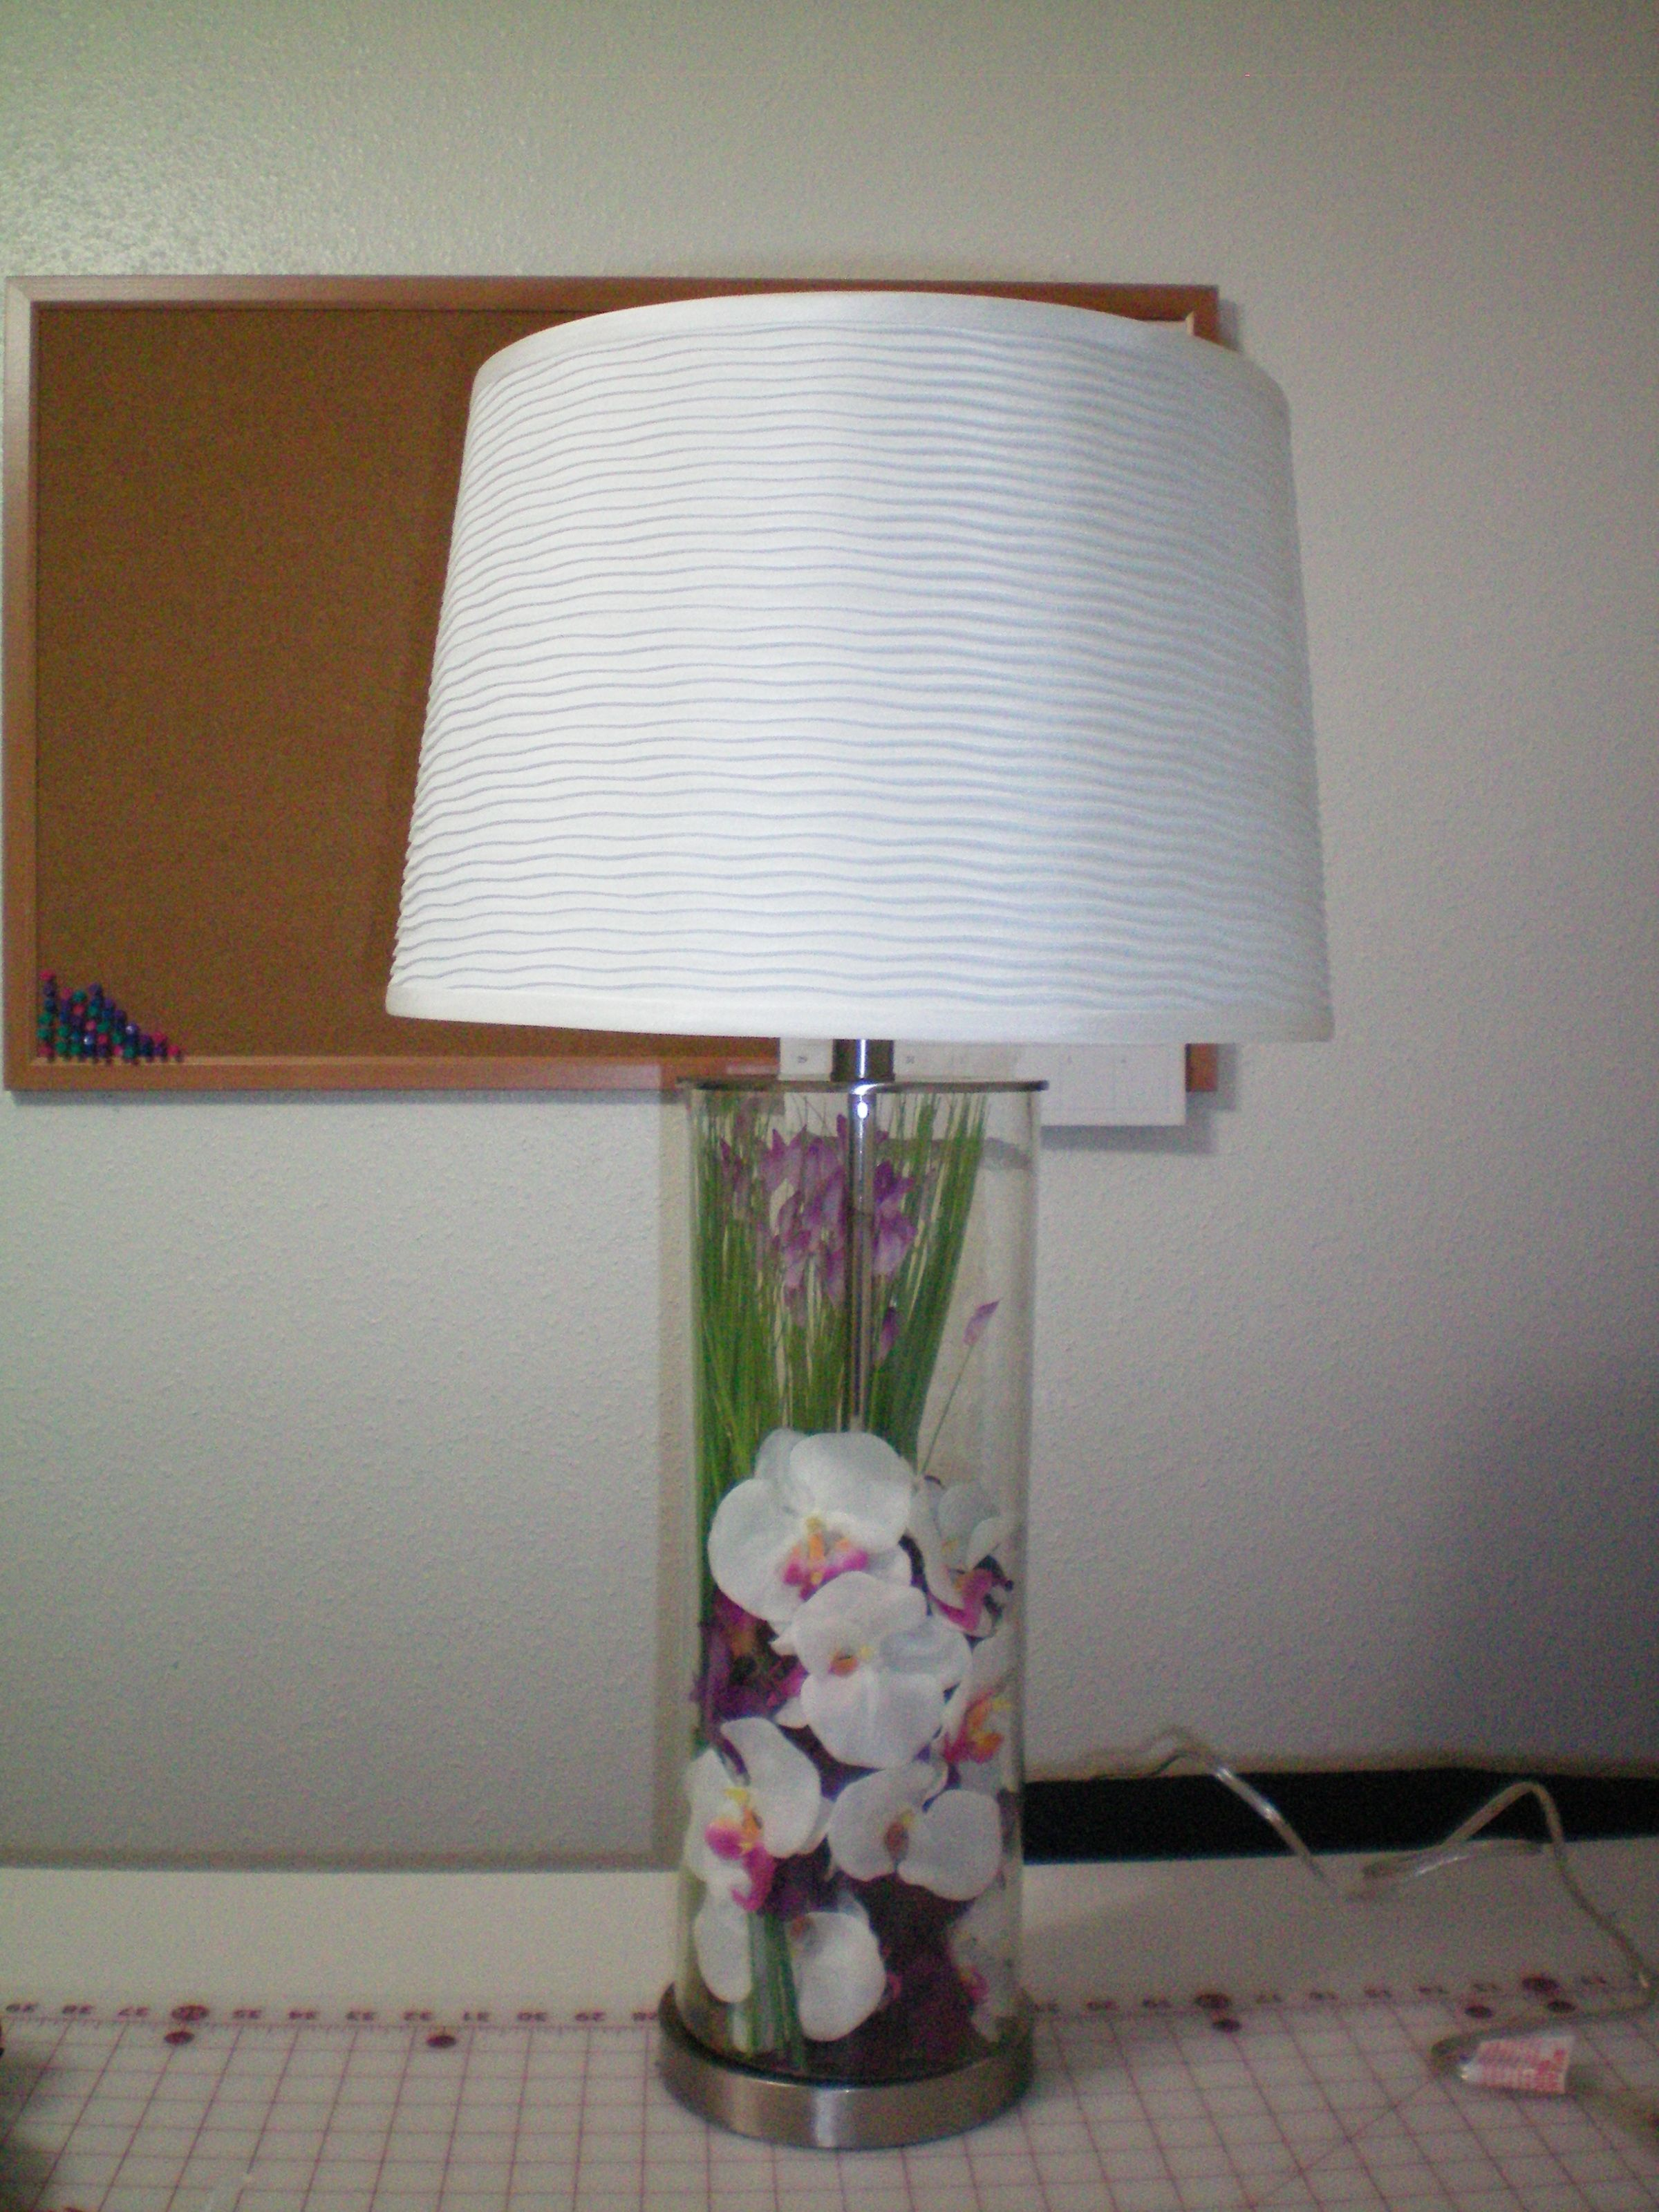 ideas for fillable lamps - Google Search | Home ideas | Pinterest ... for Diy Table Lamp From Vase  588gtk